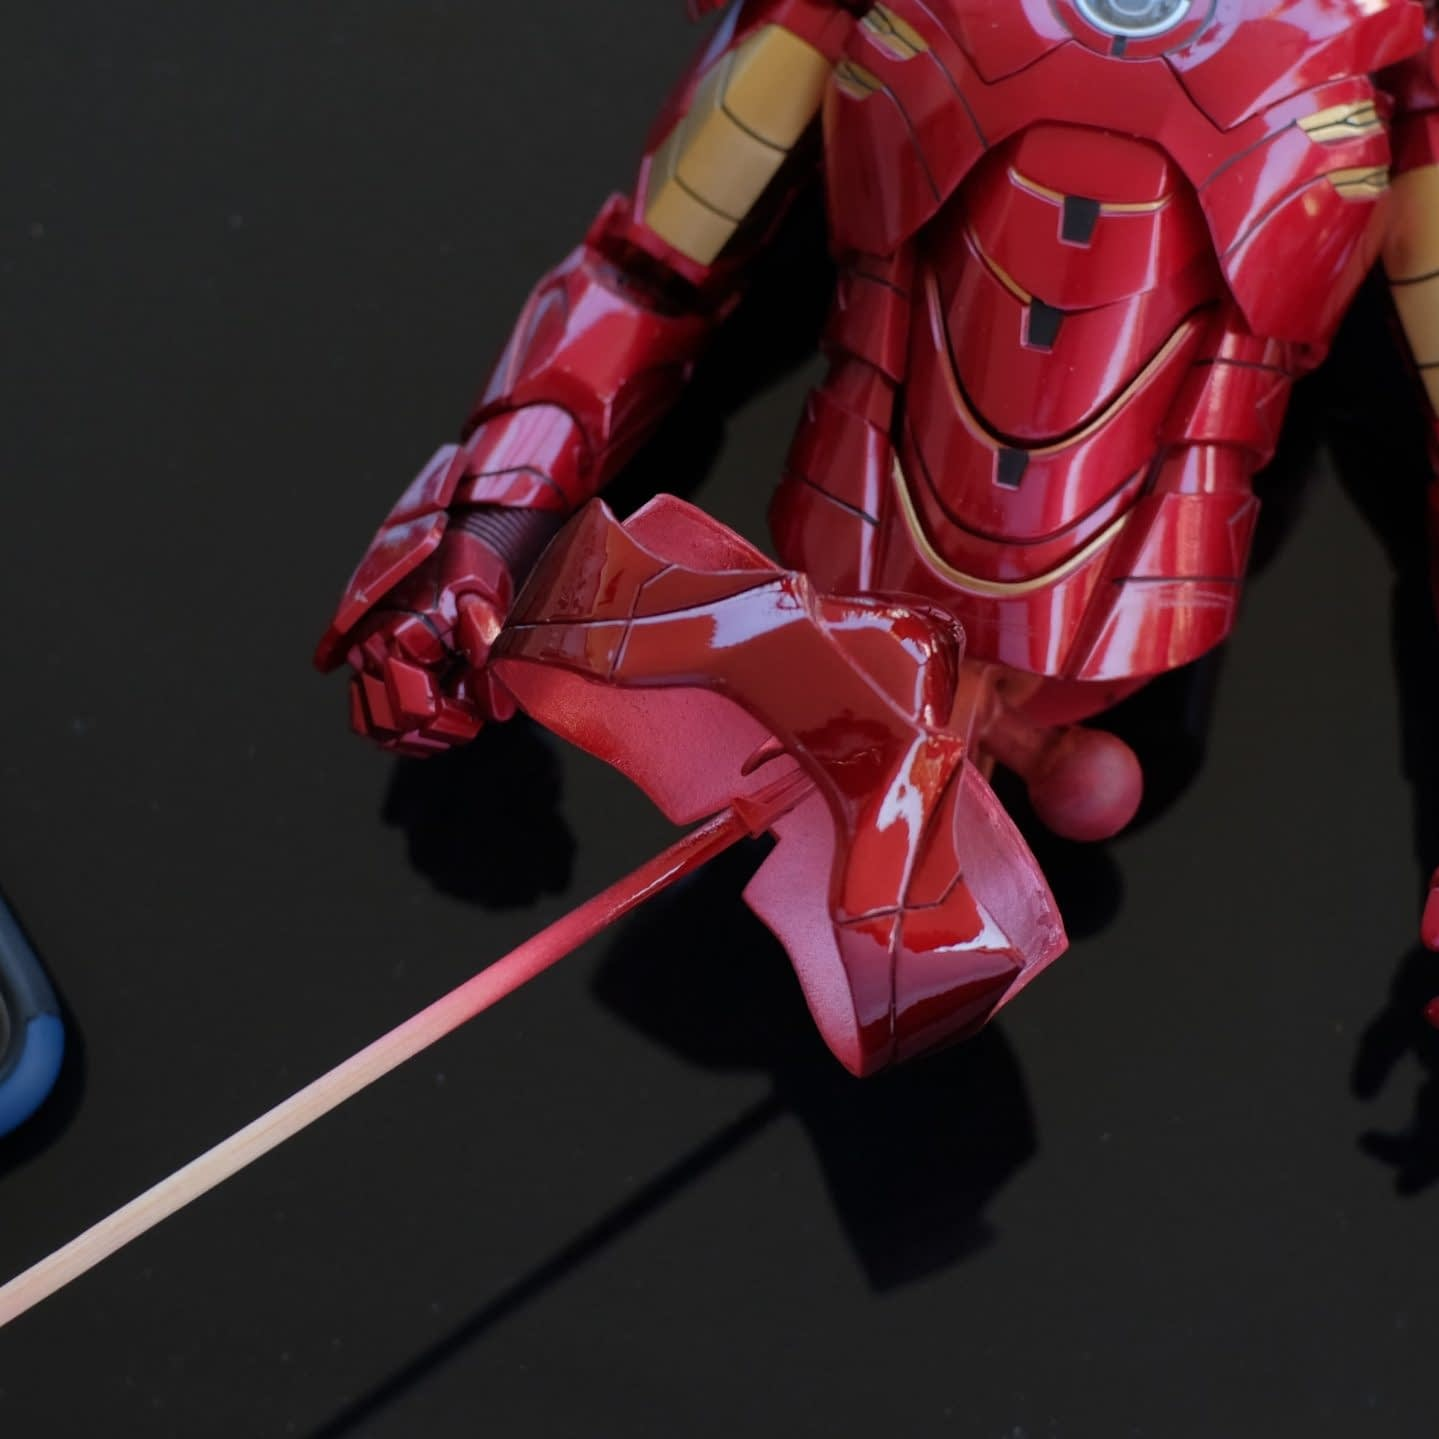 How to fix HT's Iron Man pink panty issue 41